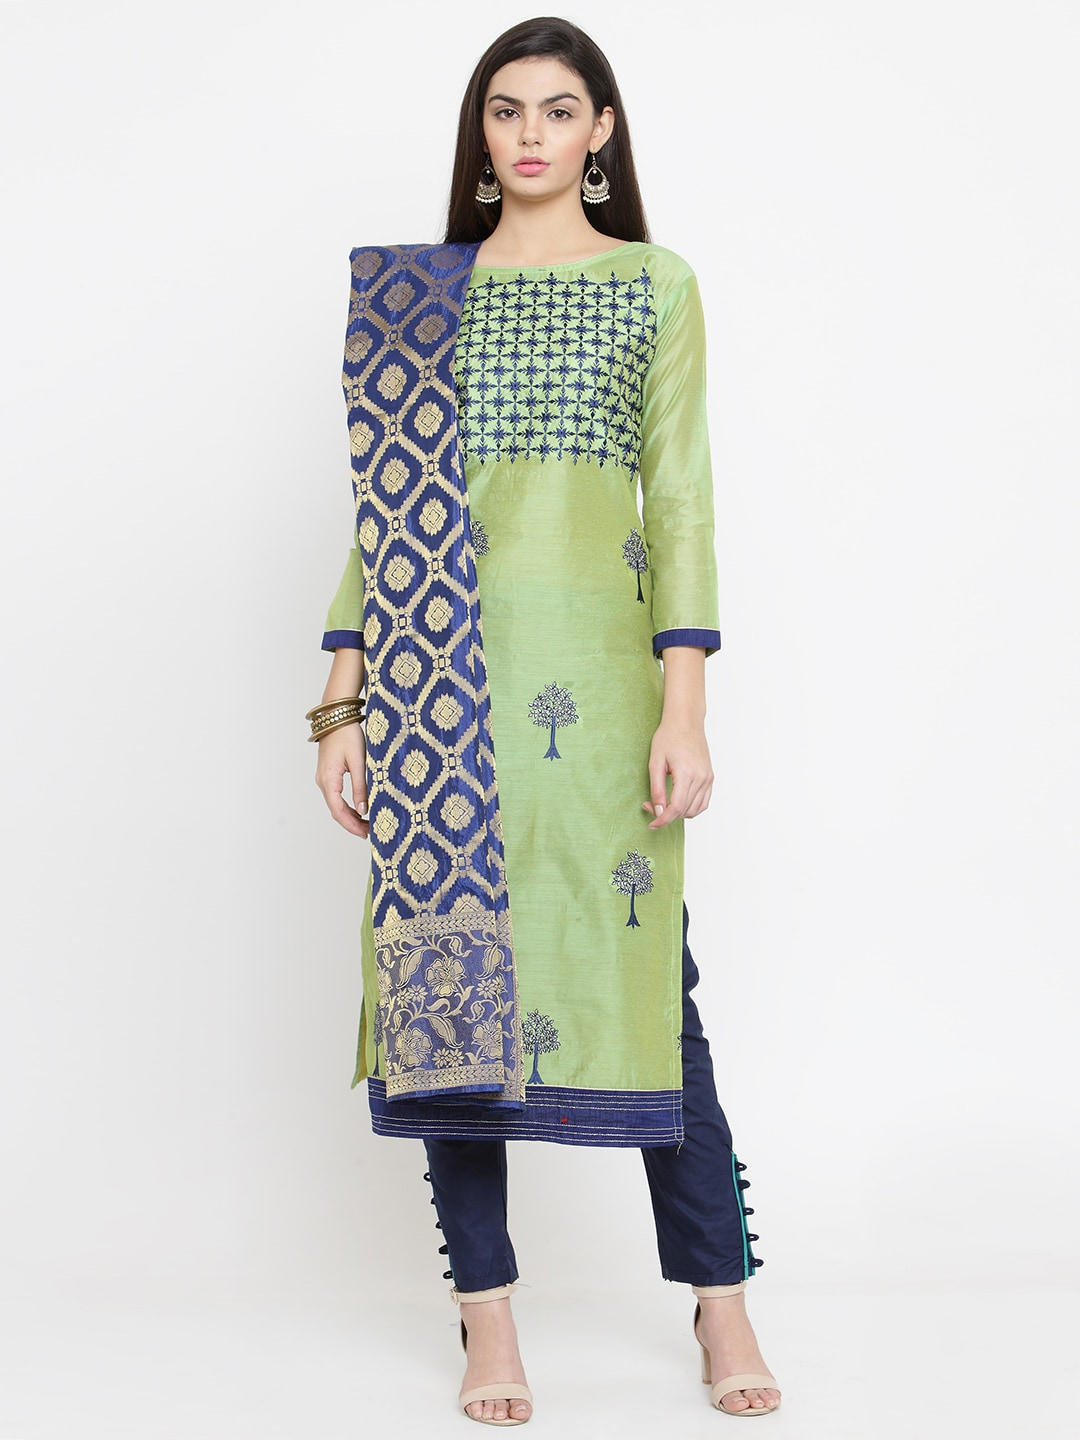 a4ba35b8e Women s Sari Online Shopping India